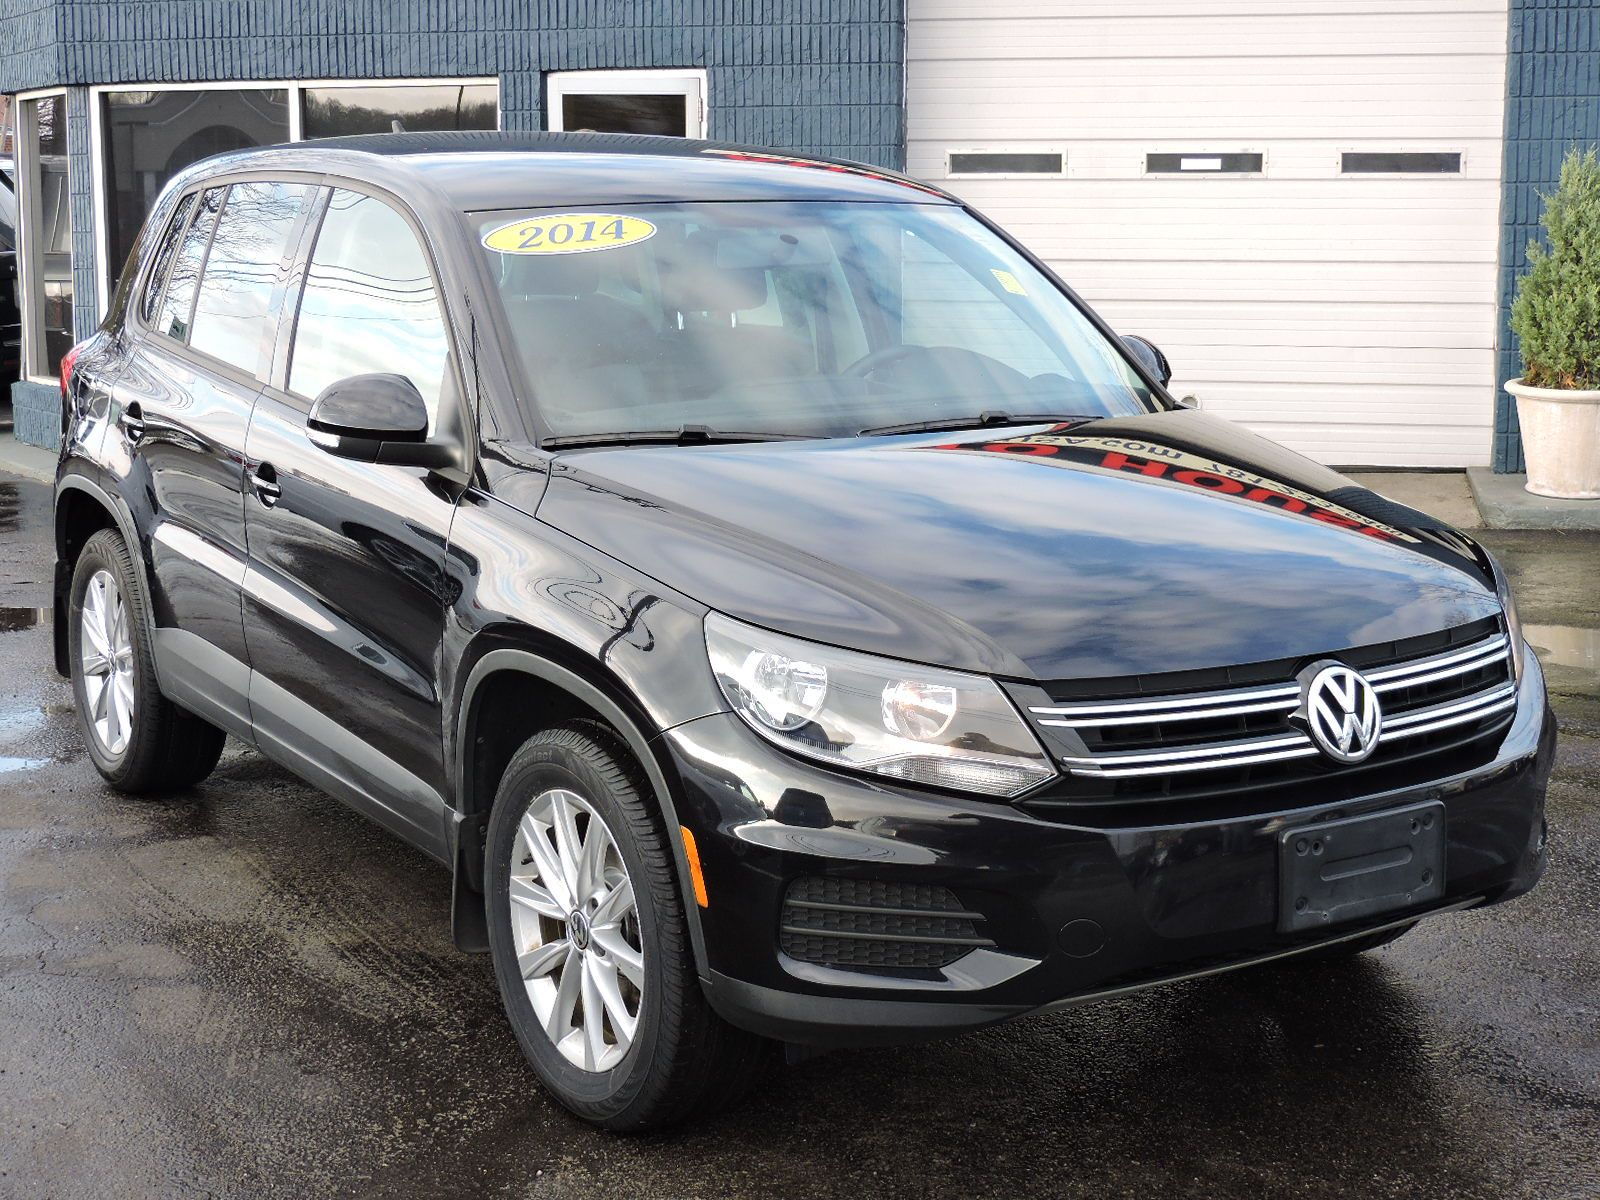 2014 Volkswagen Tiguan - SE -4Motion - All Wheel Drive